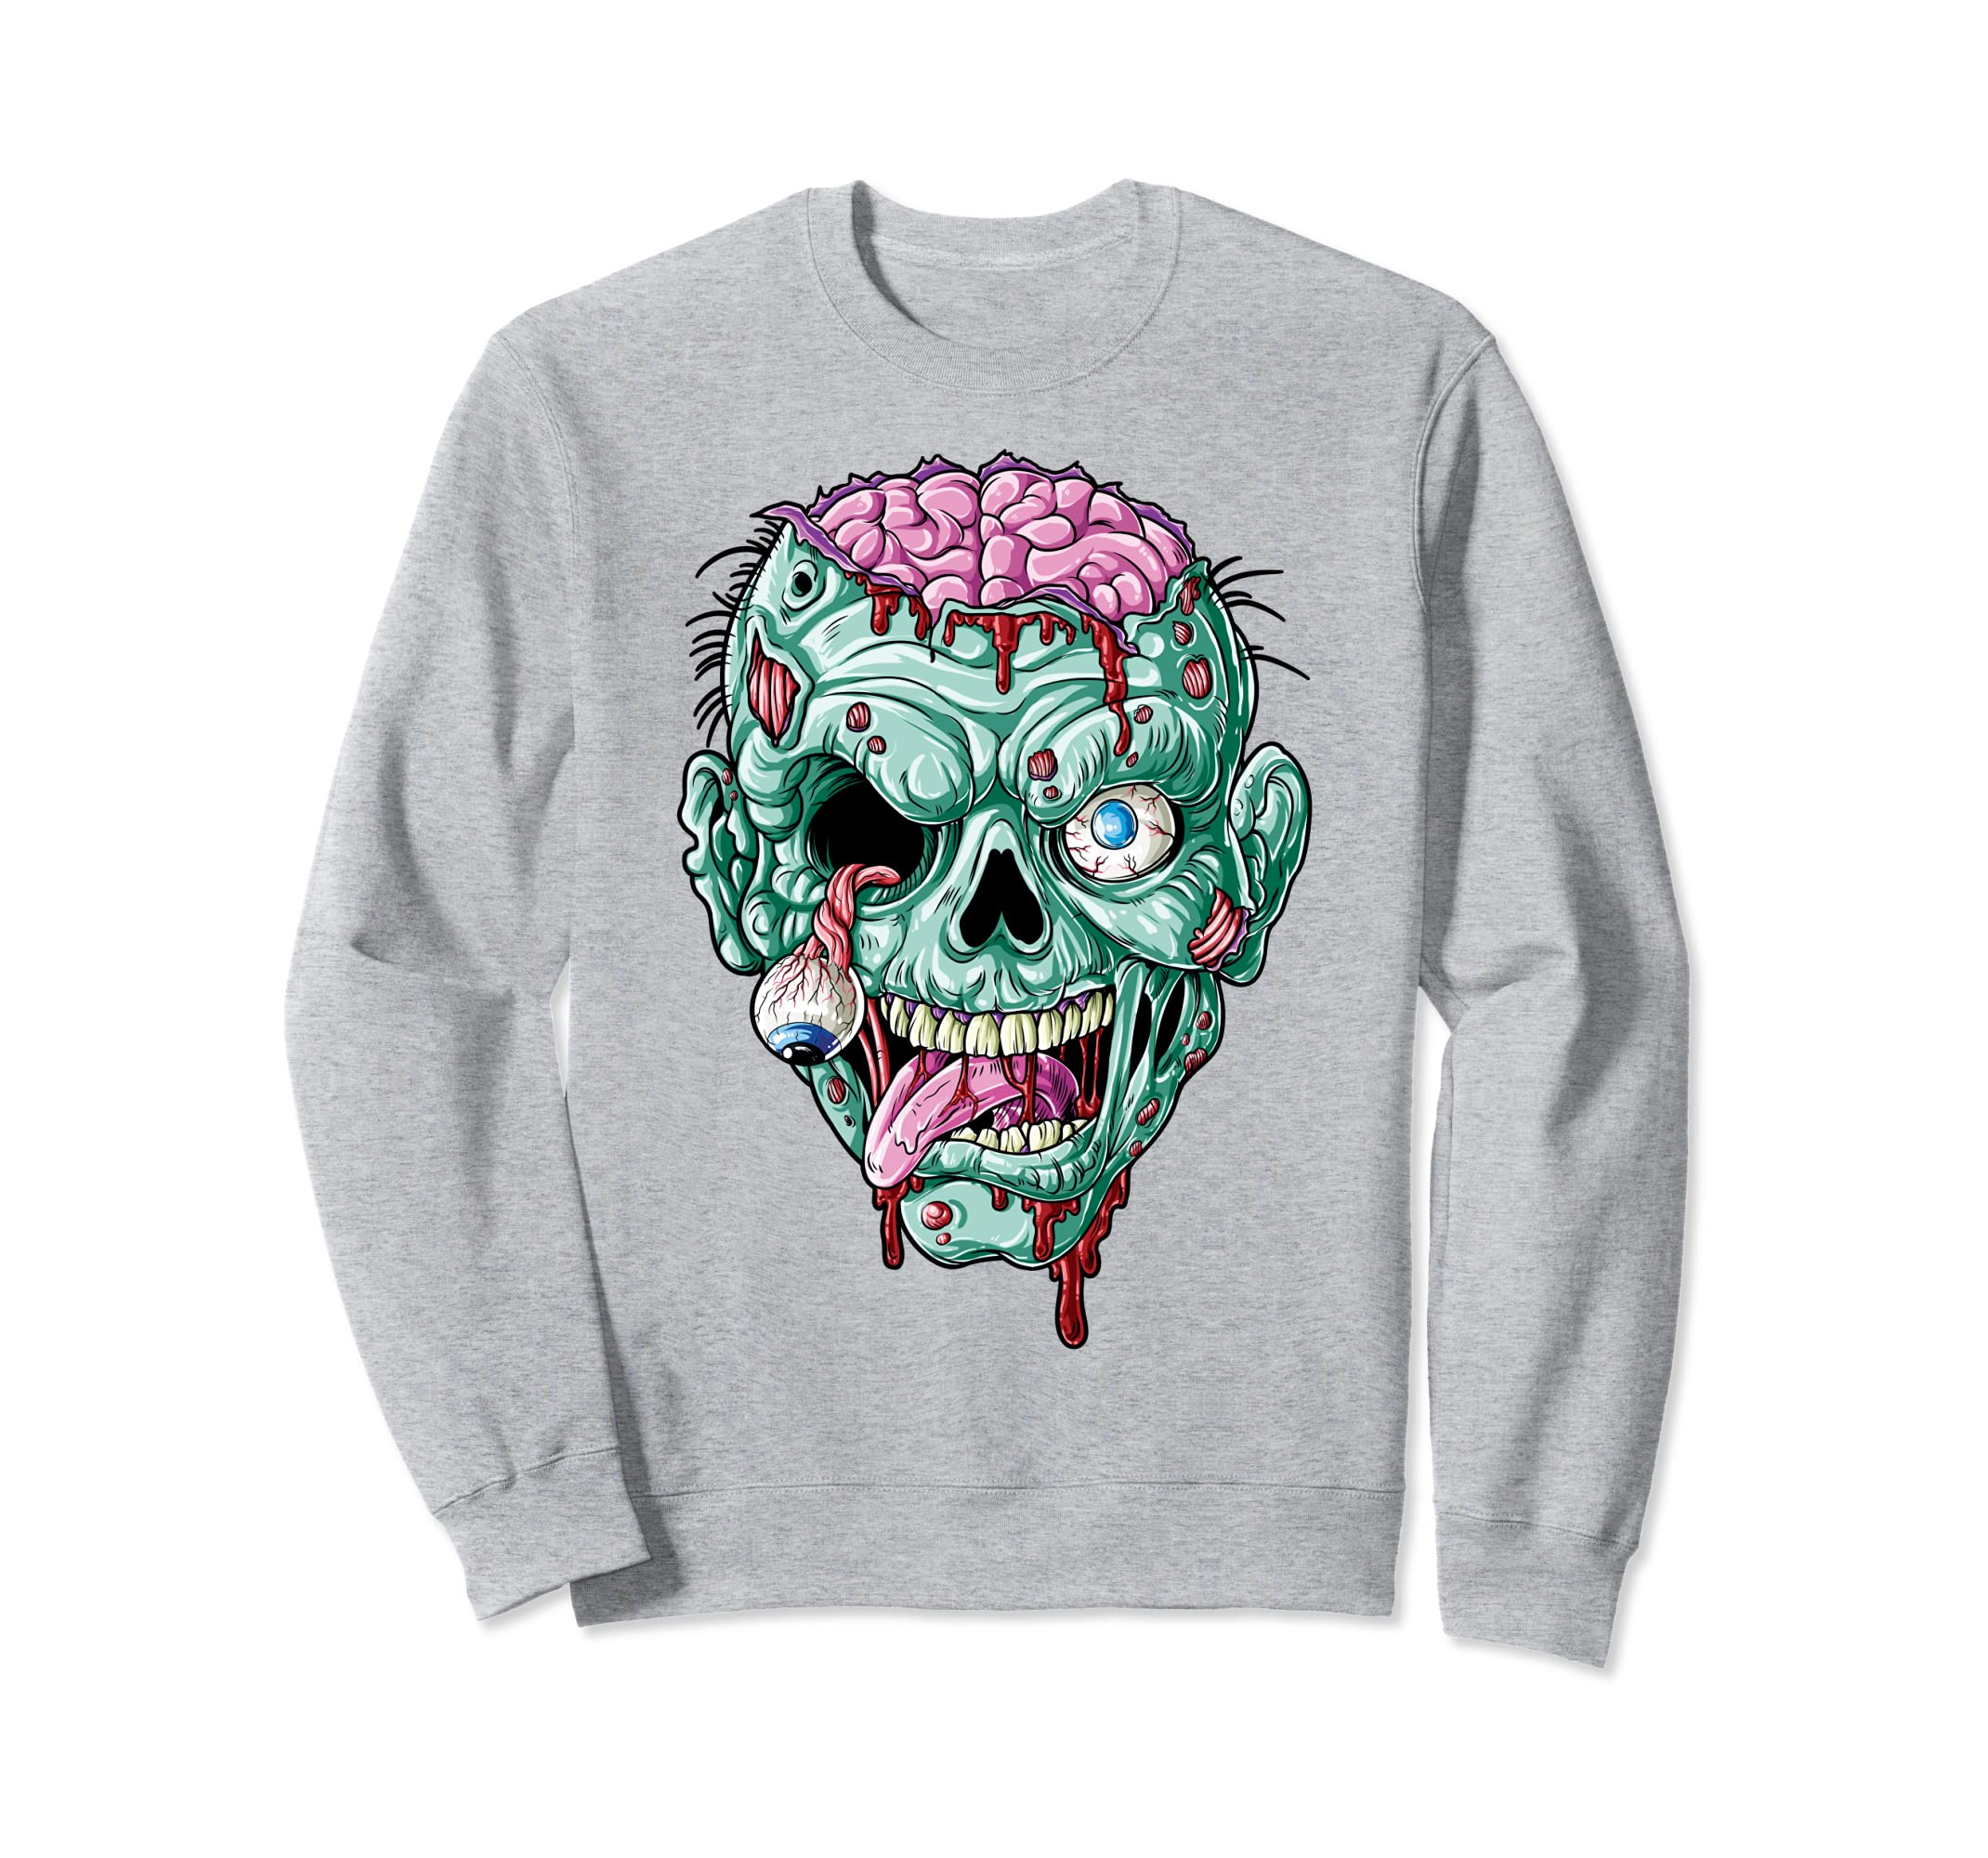 Zombie Face Sweatshirt Halloween Men Funny Zombies Brains-ANZ